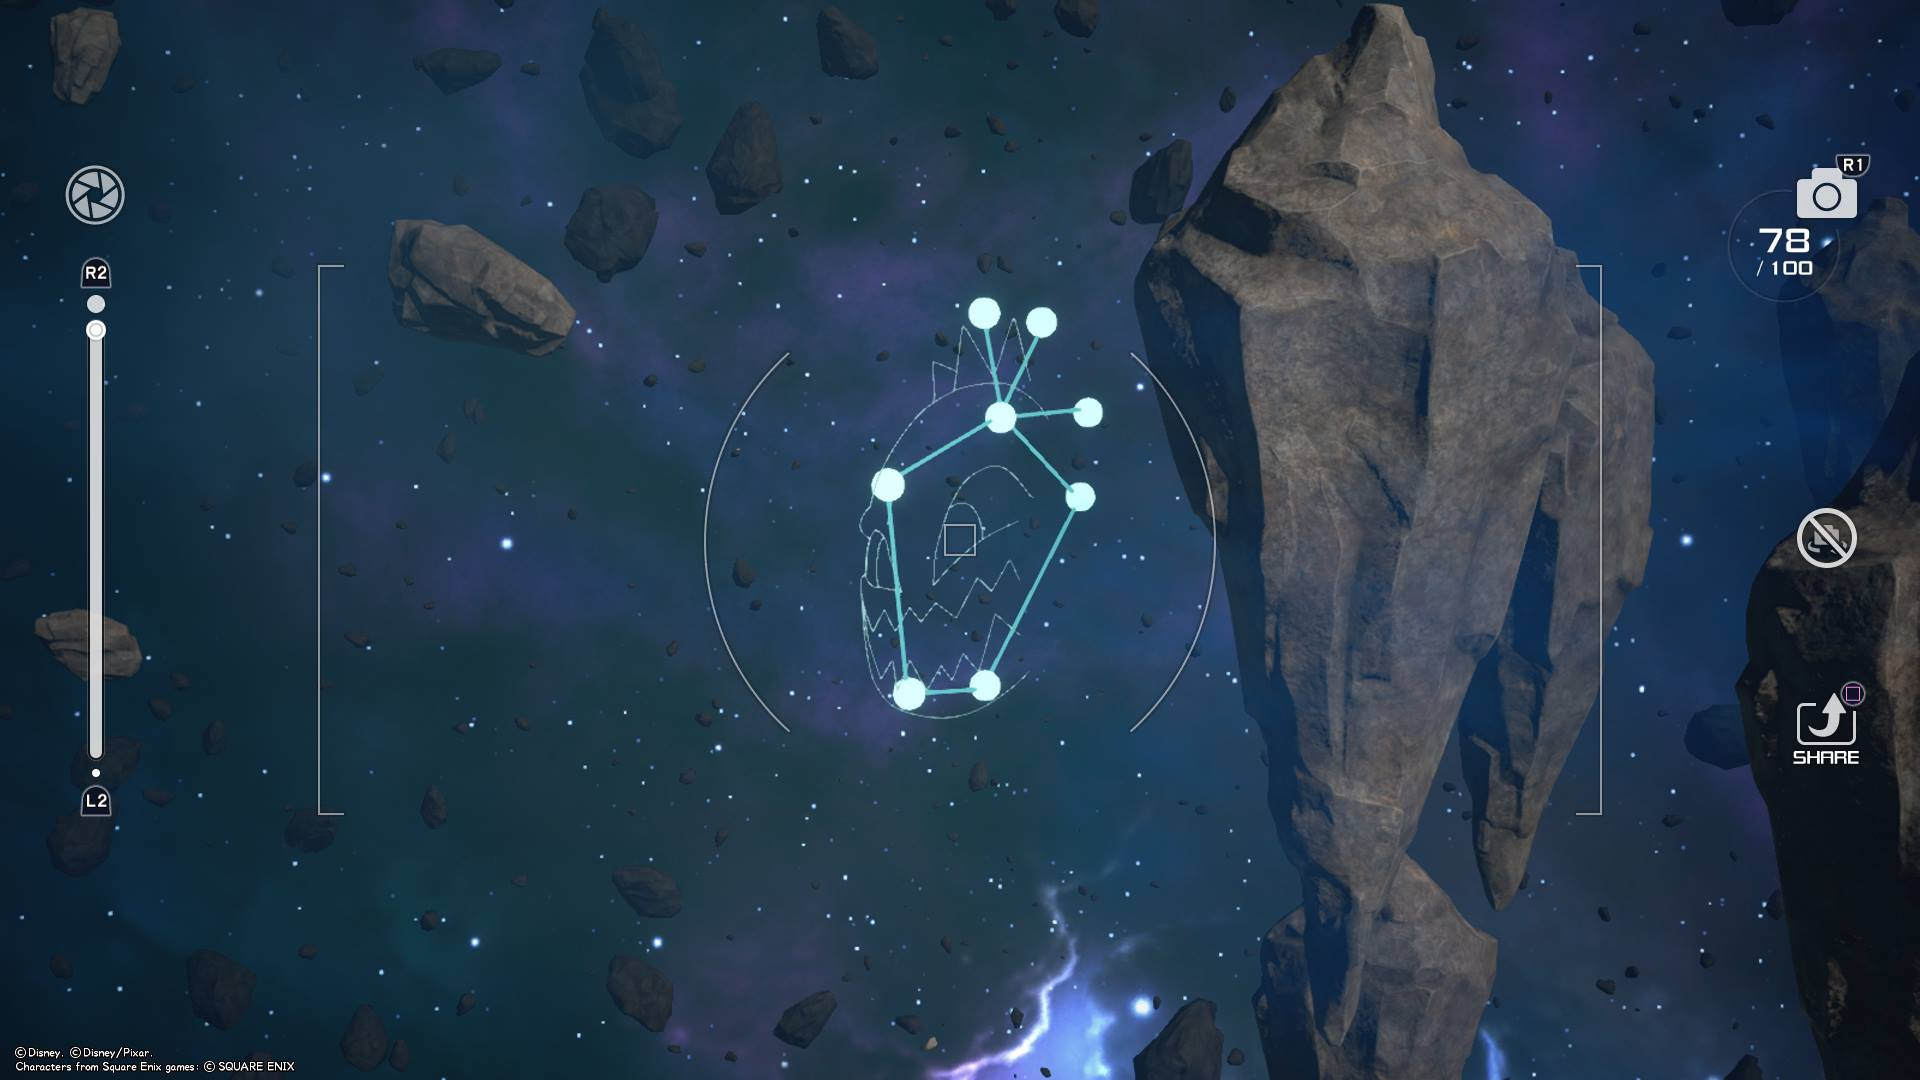 The Bomb Constellation is located near the Olympus world in the Starlight Way galaxy of Kingdom Hearts 3.